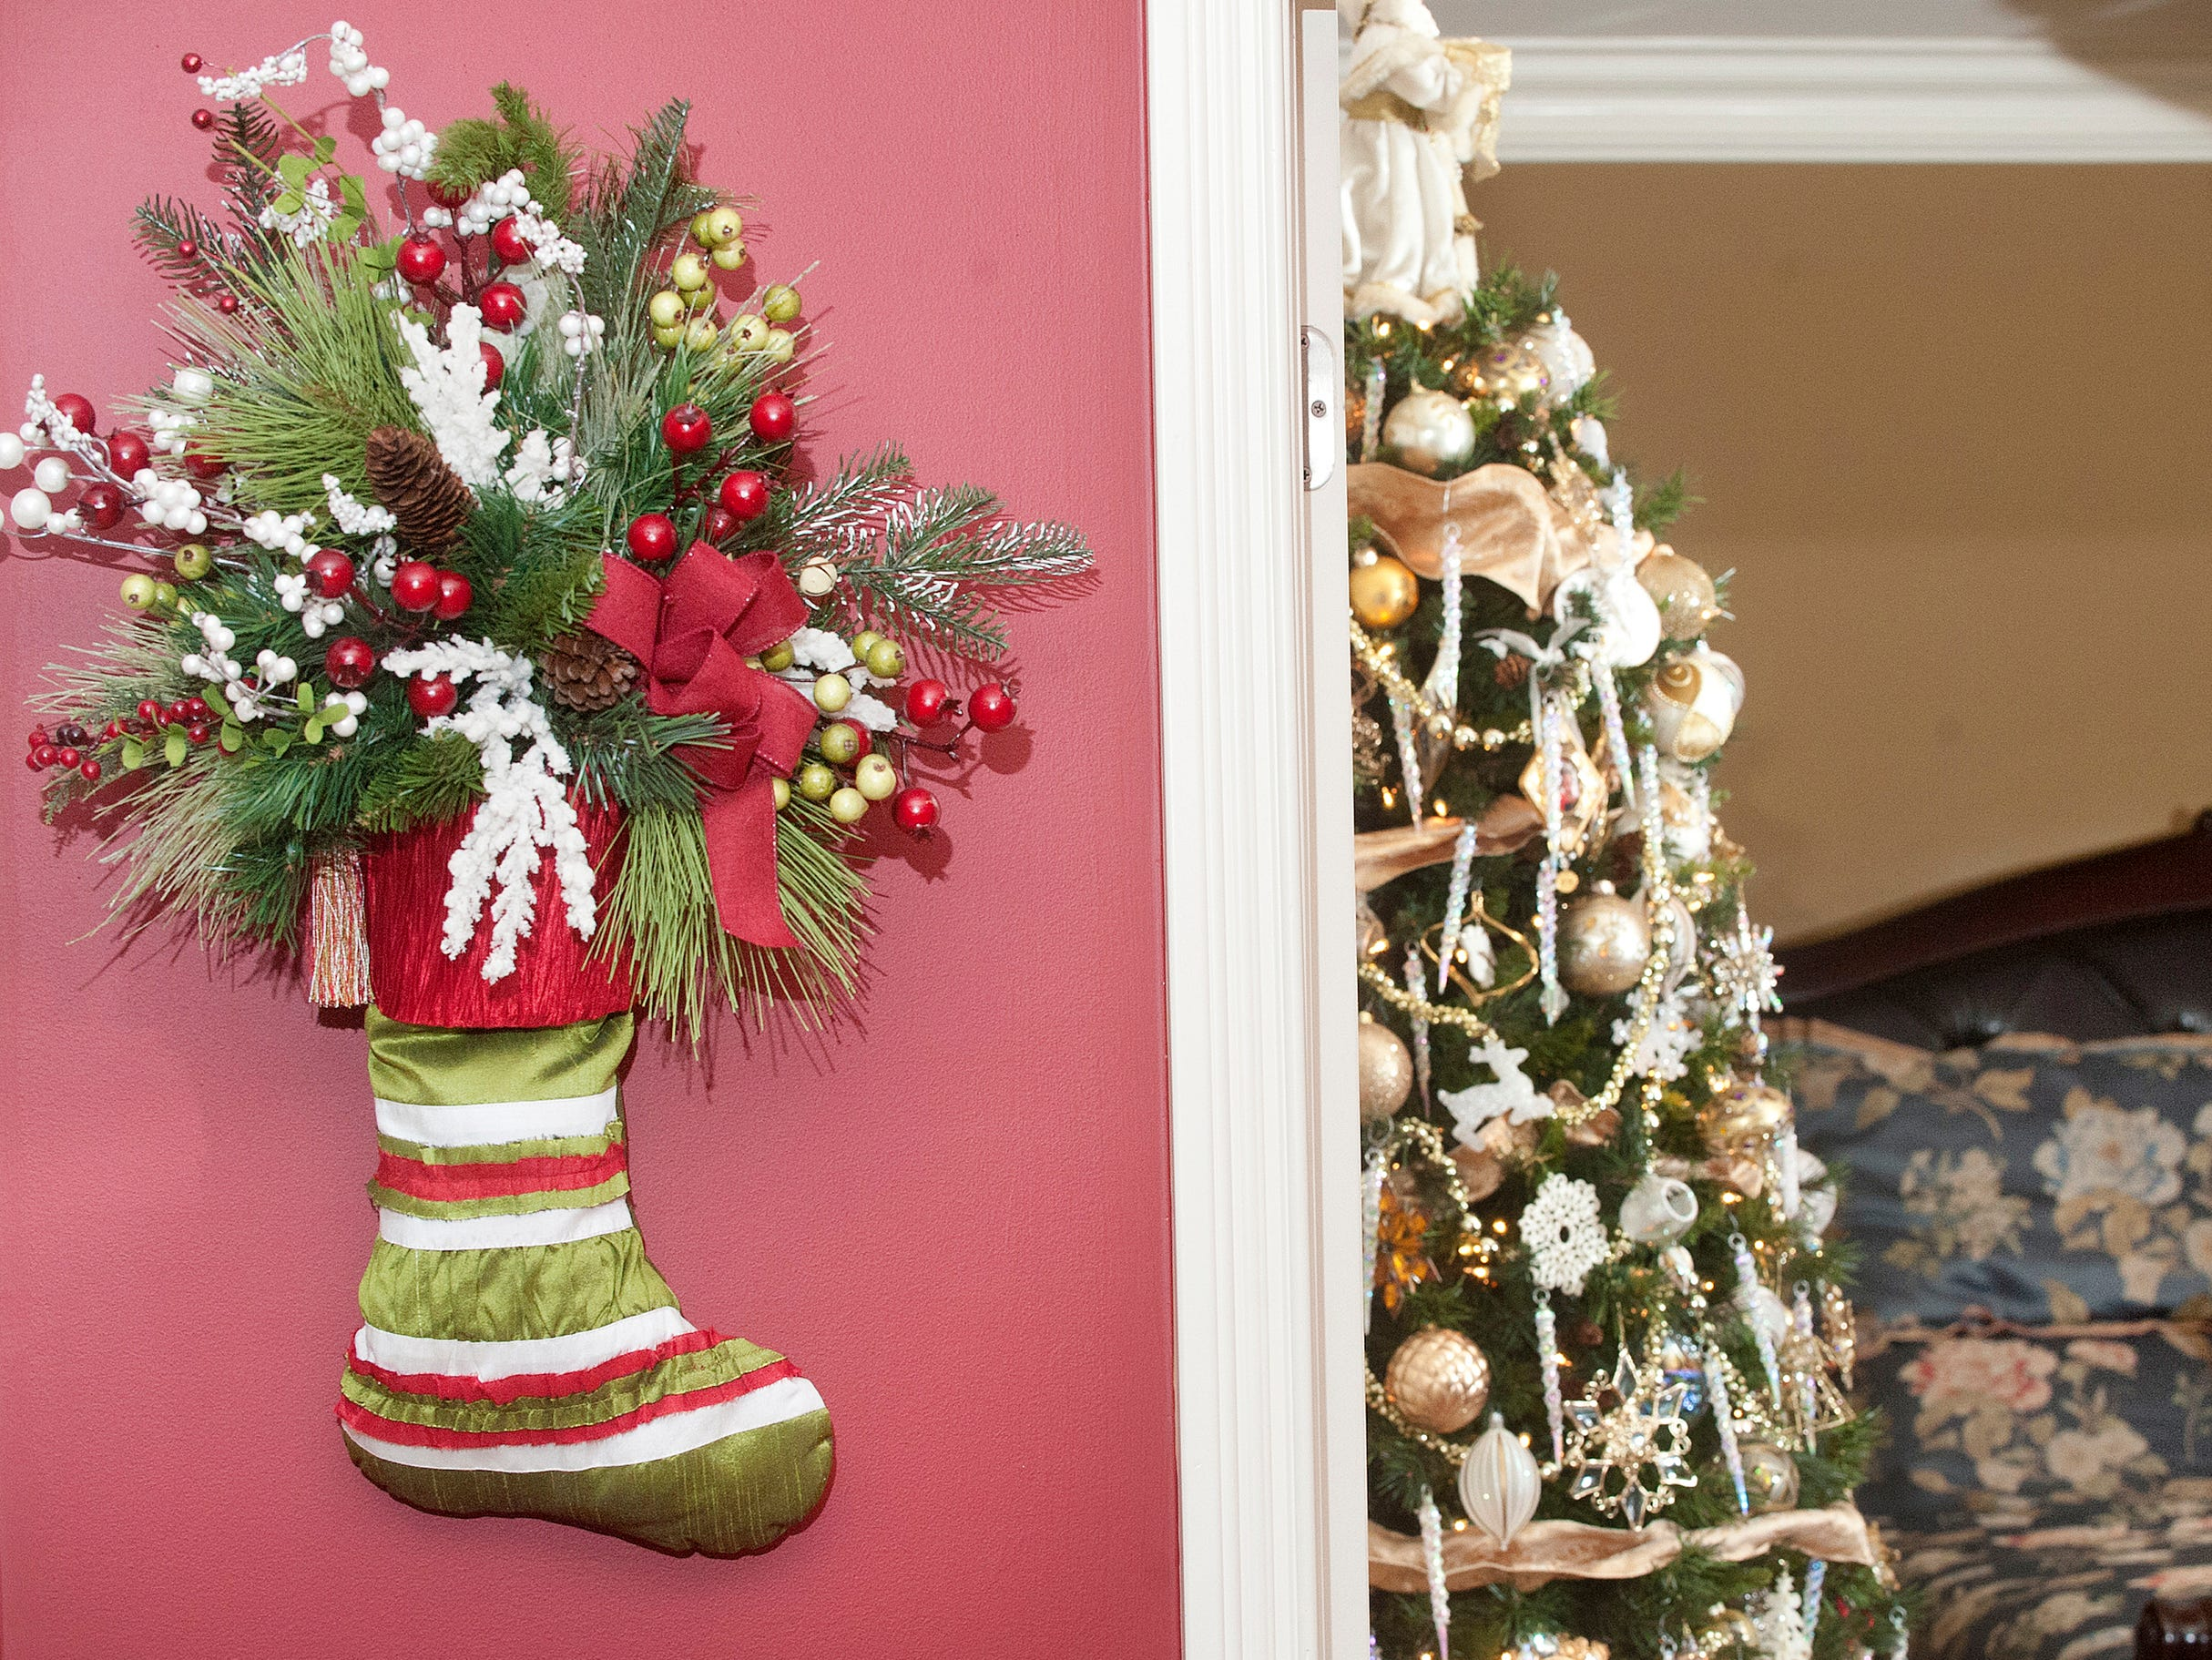 A stocking filled with greenery and berries adorns the wall outside the entrance to the master bedroom at right.